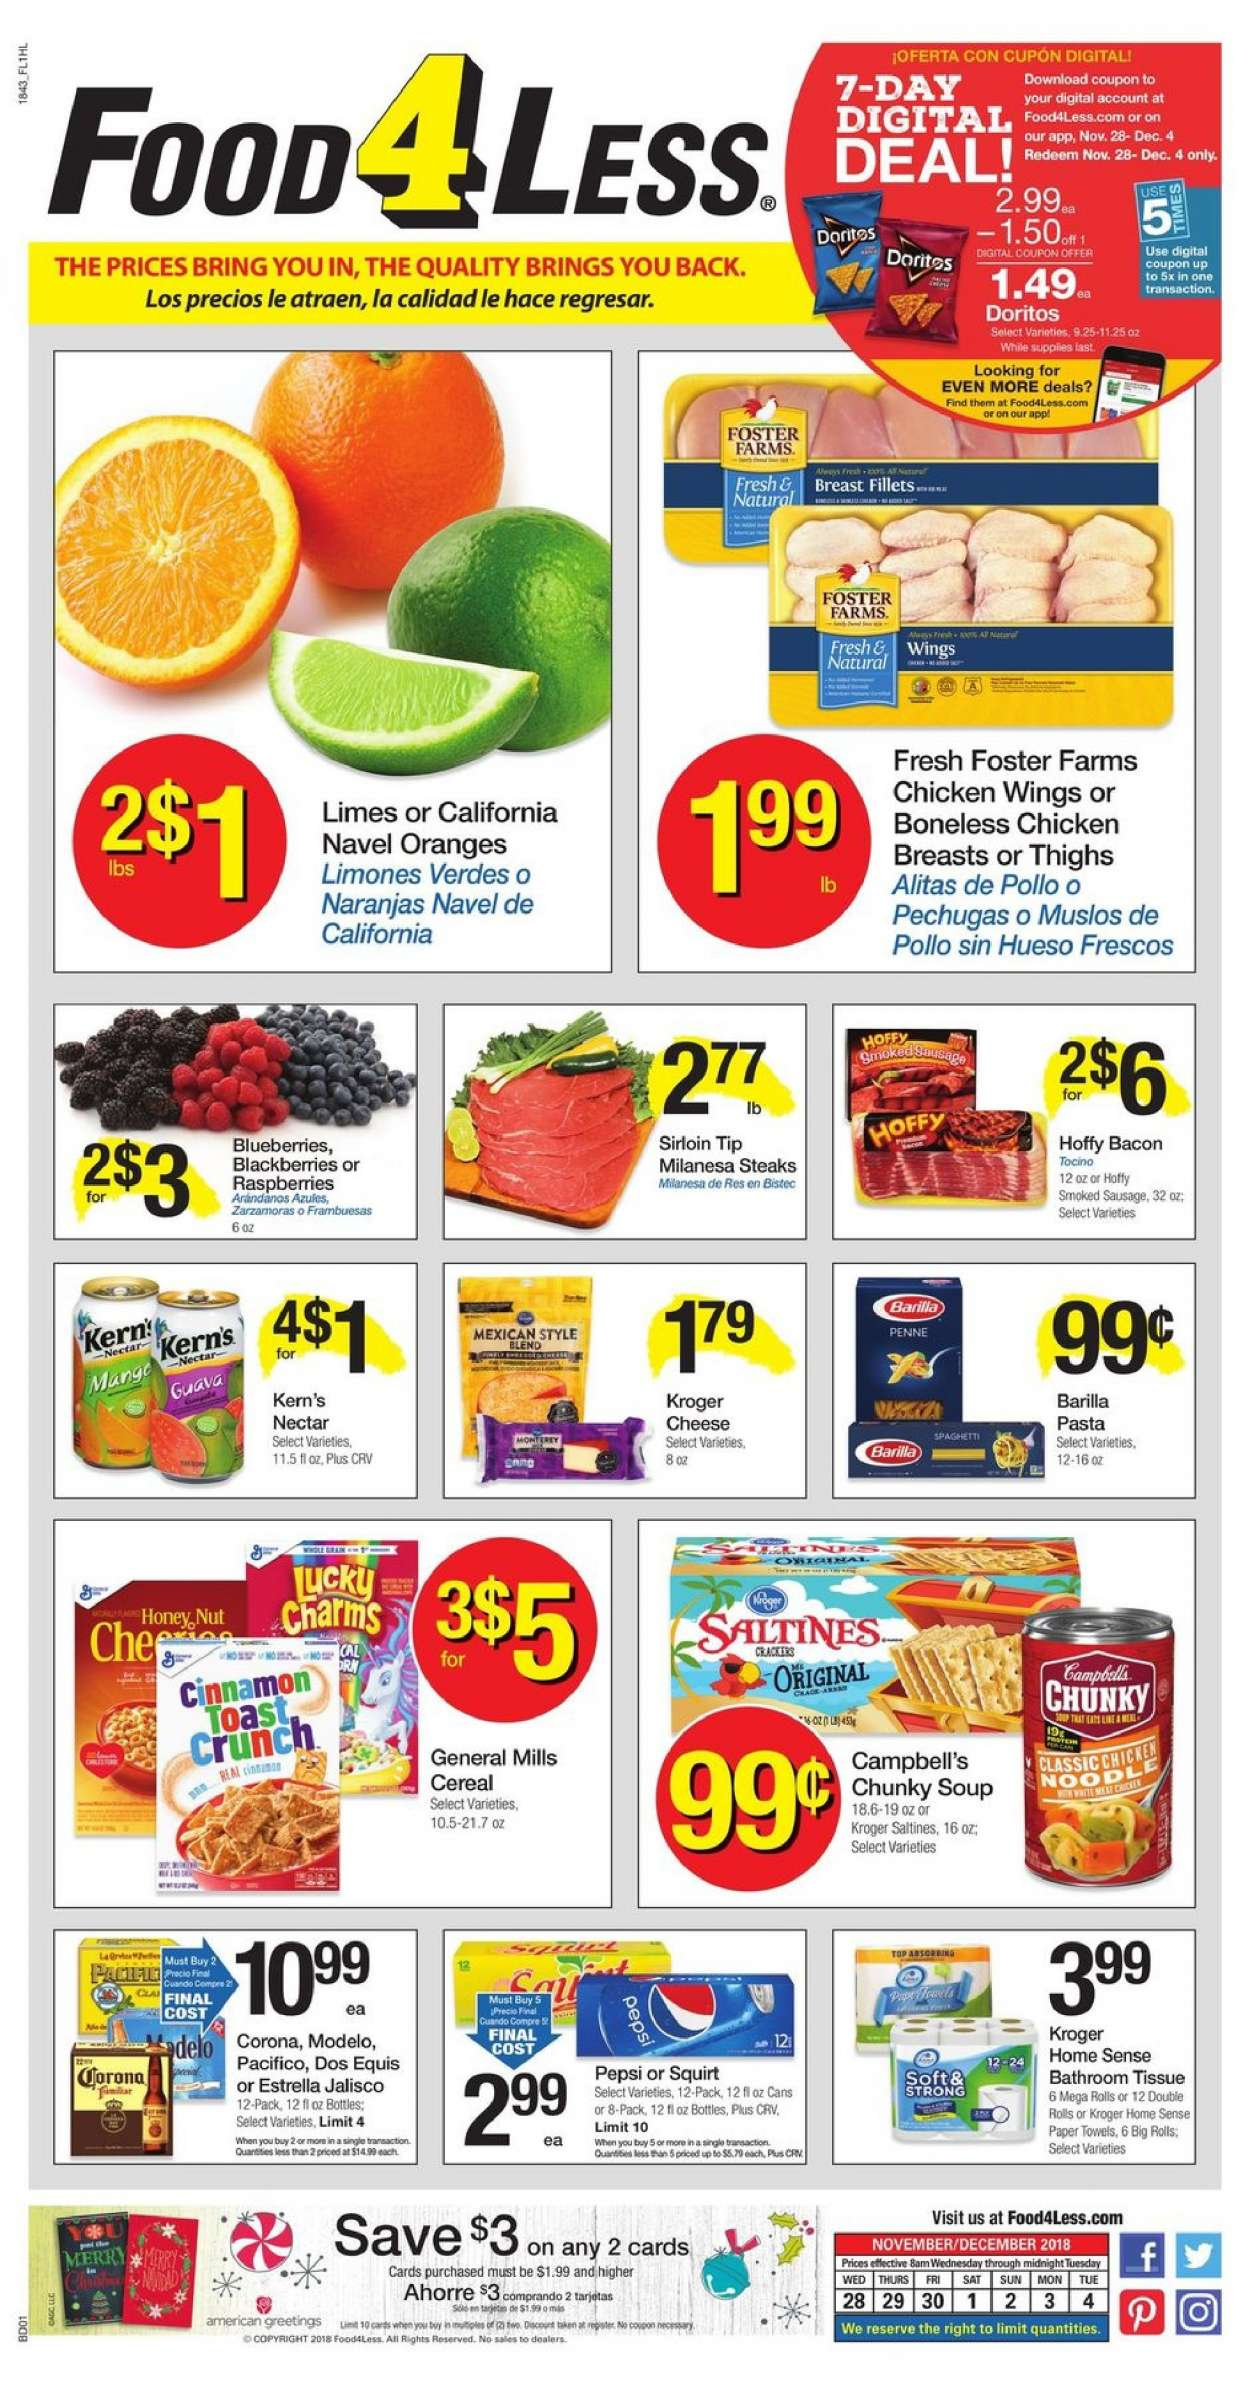 Food 4 Less Flyer - 11.28.2018 - 12.04.2018 - Sales products - Corona, Dos Equis, blackberries, blueberries, limes, raspberries, orange, rolls, Campbell's, bacon, sausage, smoked sausage, Doritos, cereals, pasta, Pepsi, chicken, chicken breast, chicken wings, paper towel. Page 1.